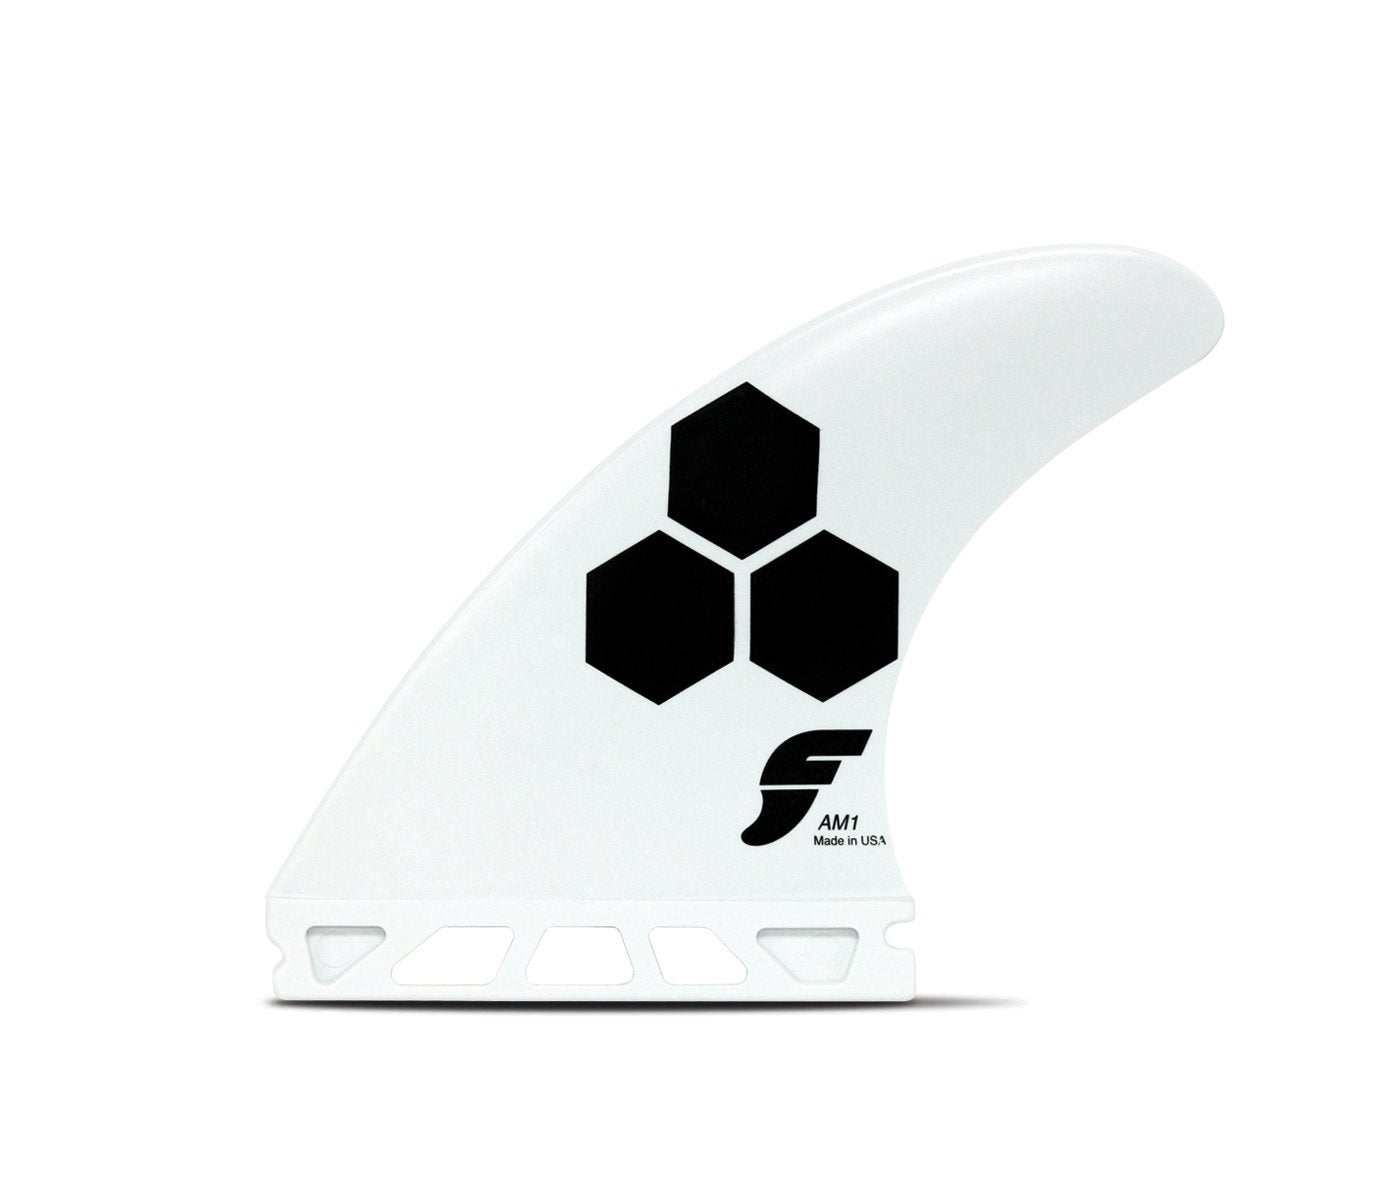 Futures AM1 Thermotech - Board Store FuturesFins